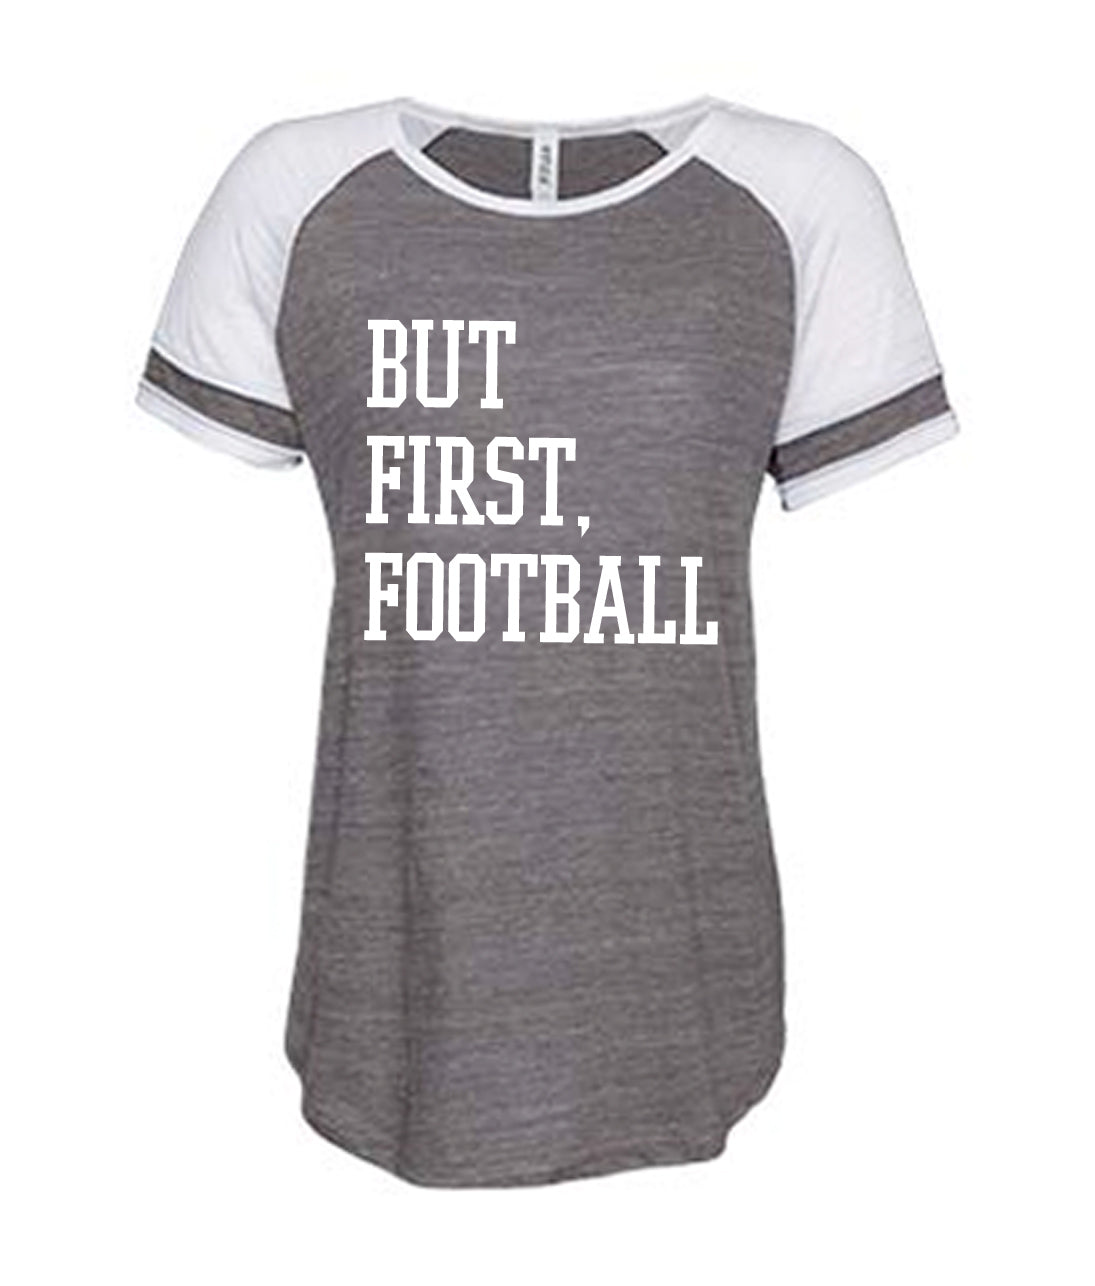 LAST CHANCE | 146051 | But First, Football